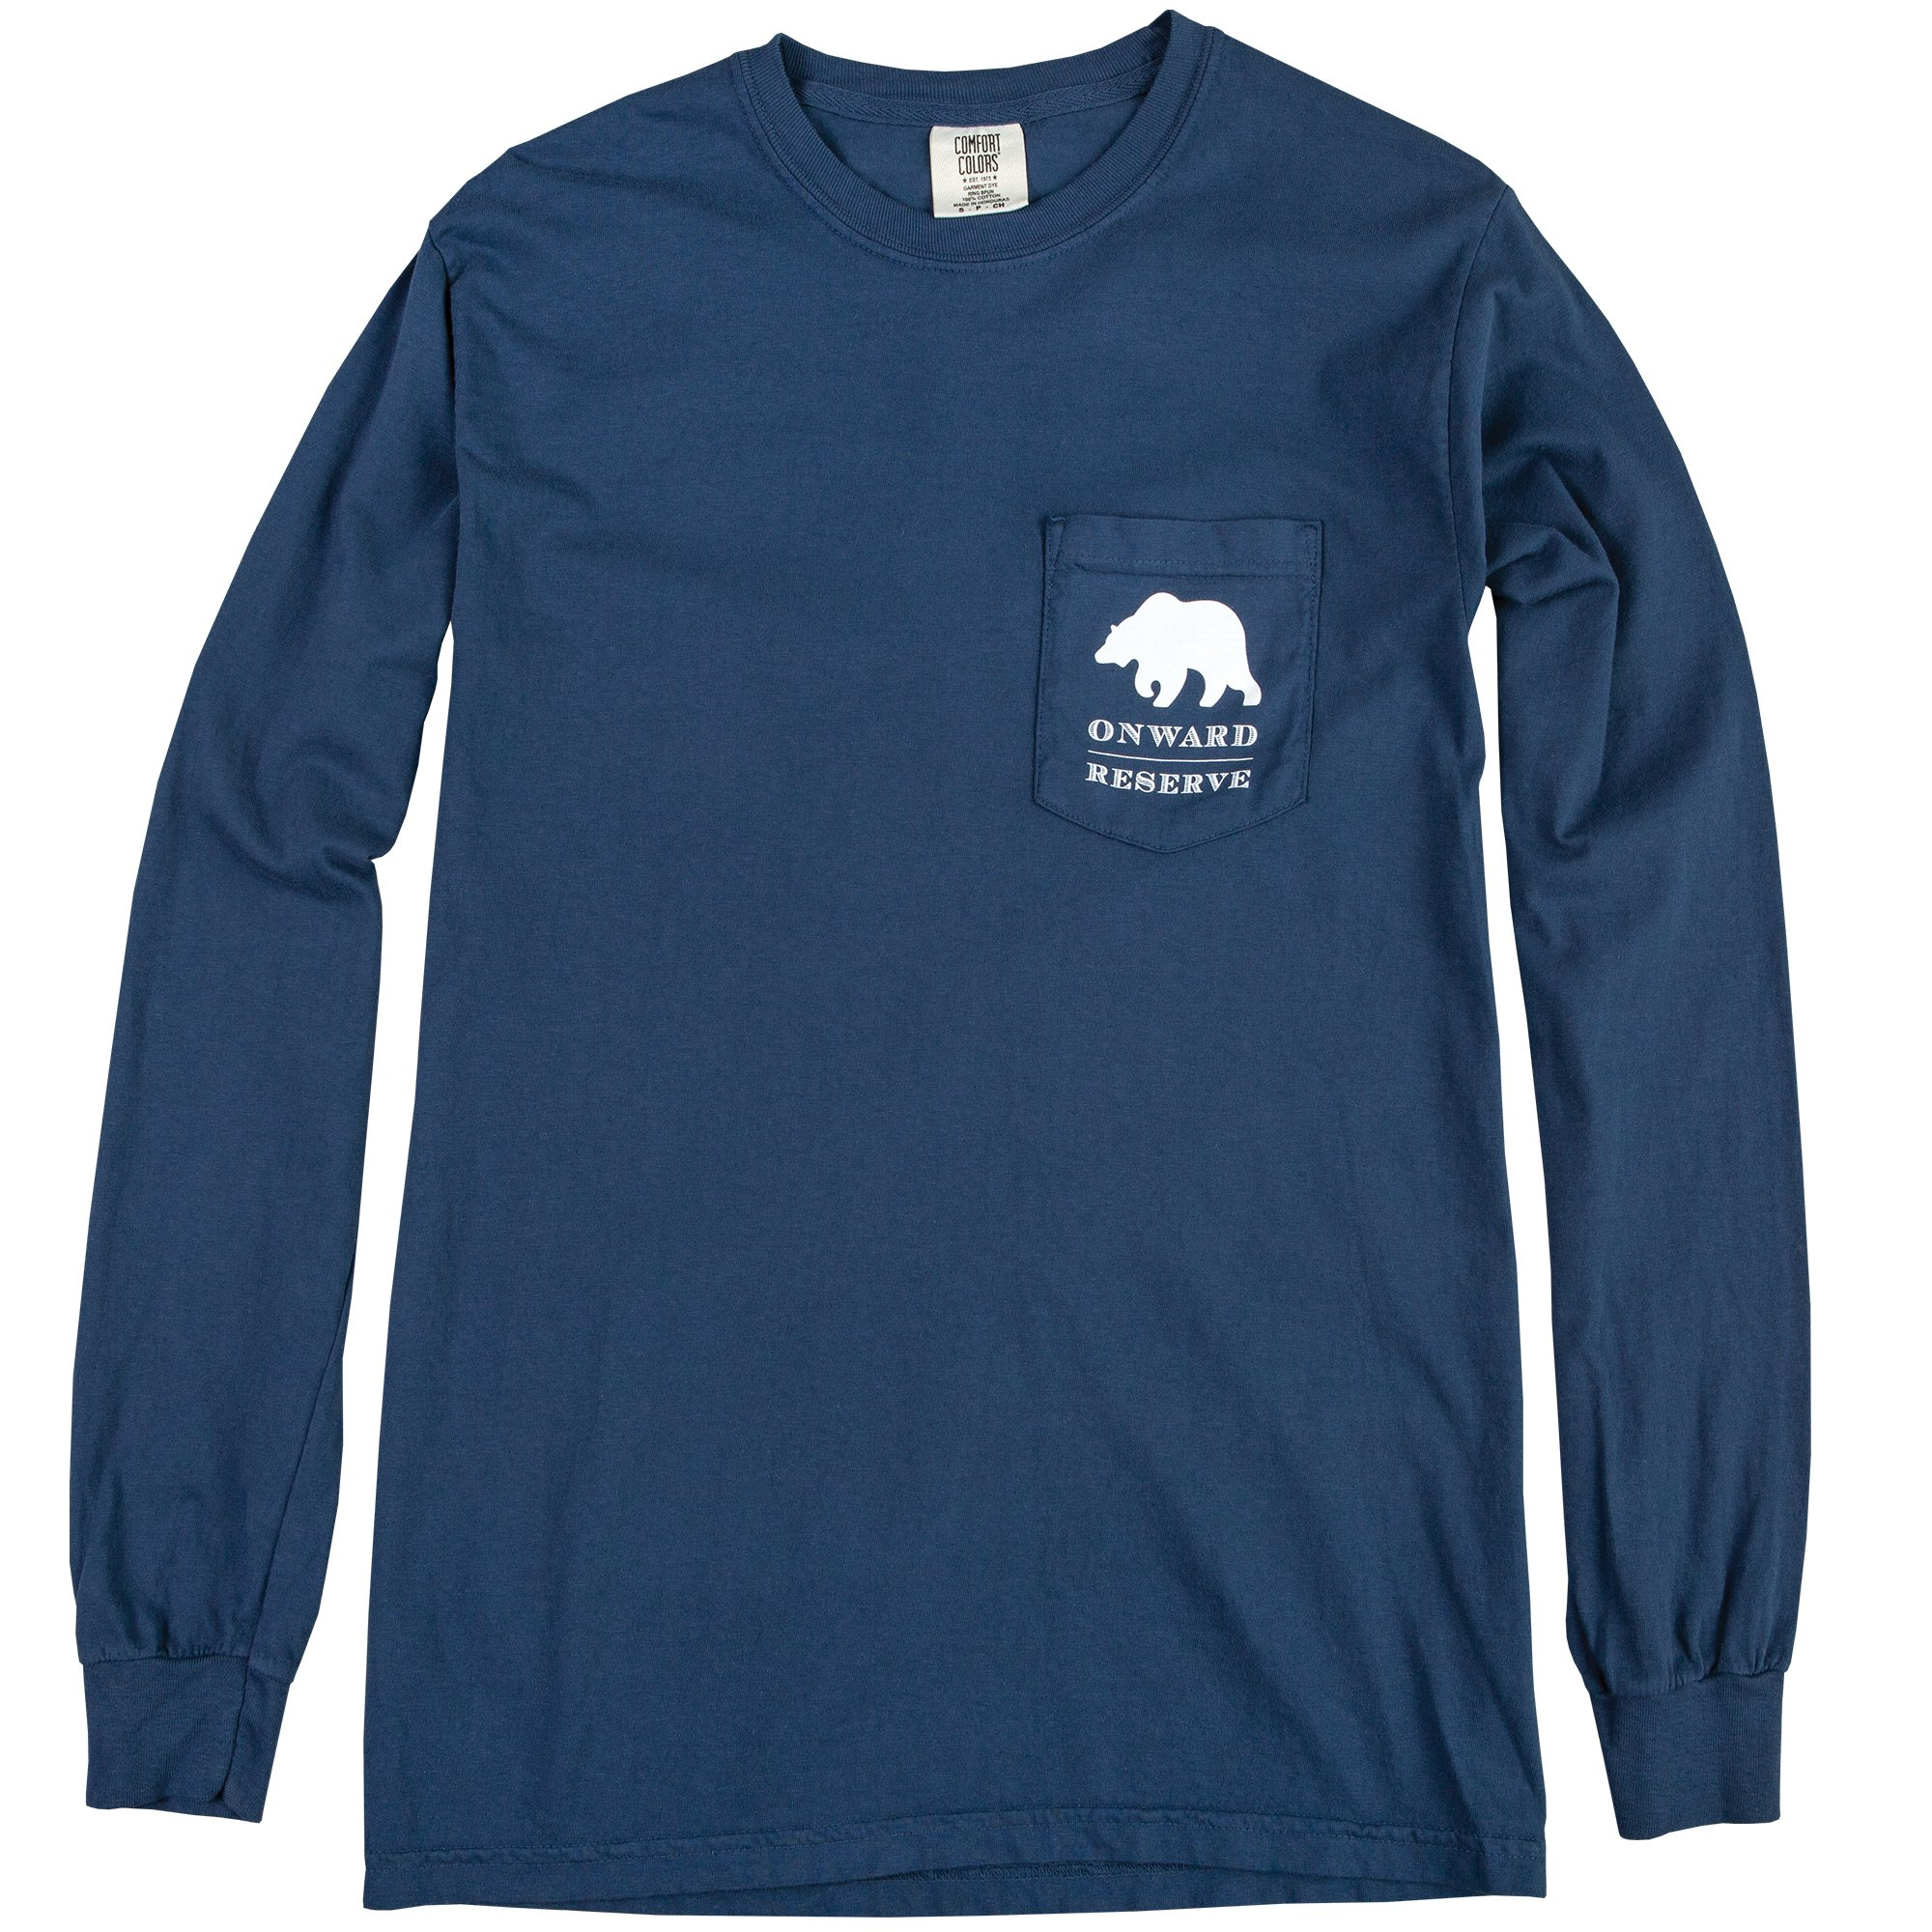 OR-Jamie-Tee-LS-Golden-Retriever-Navy-Front.jpg